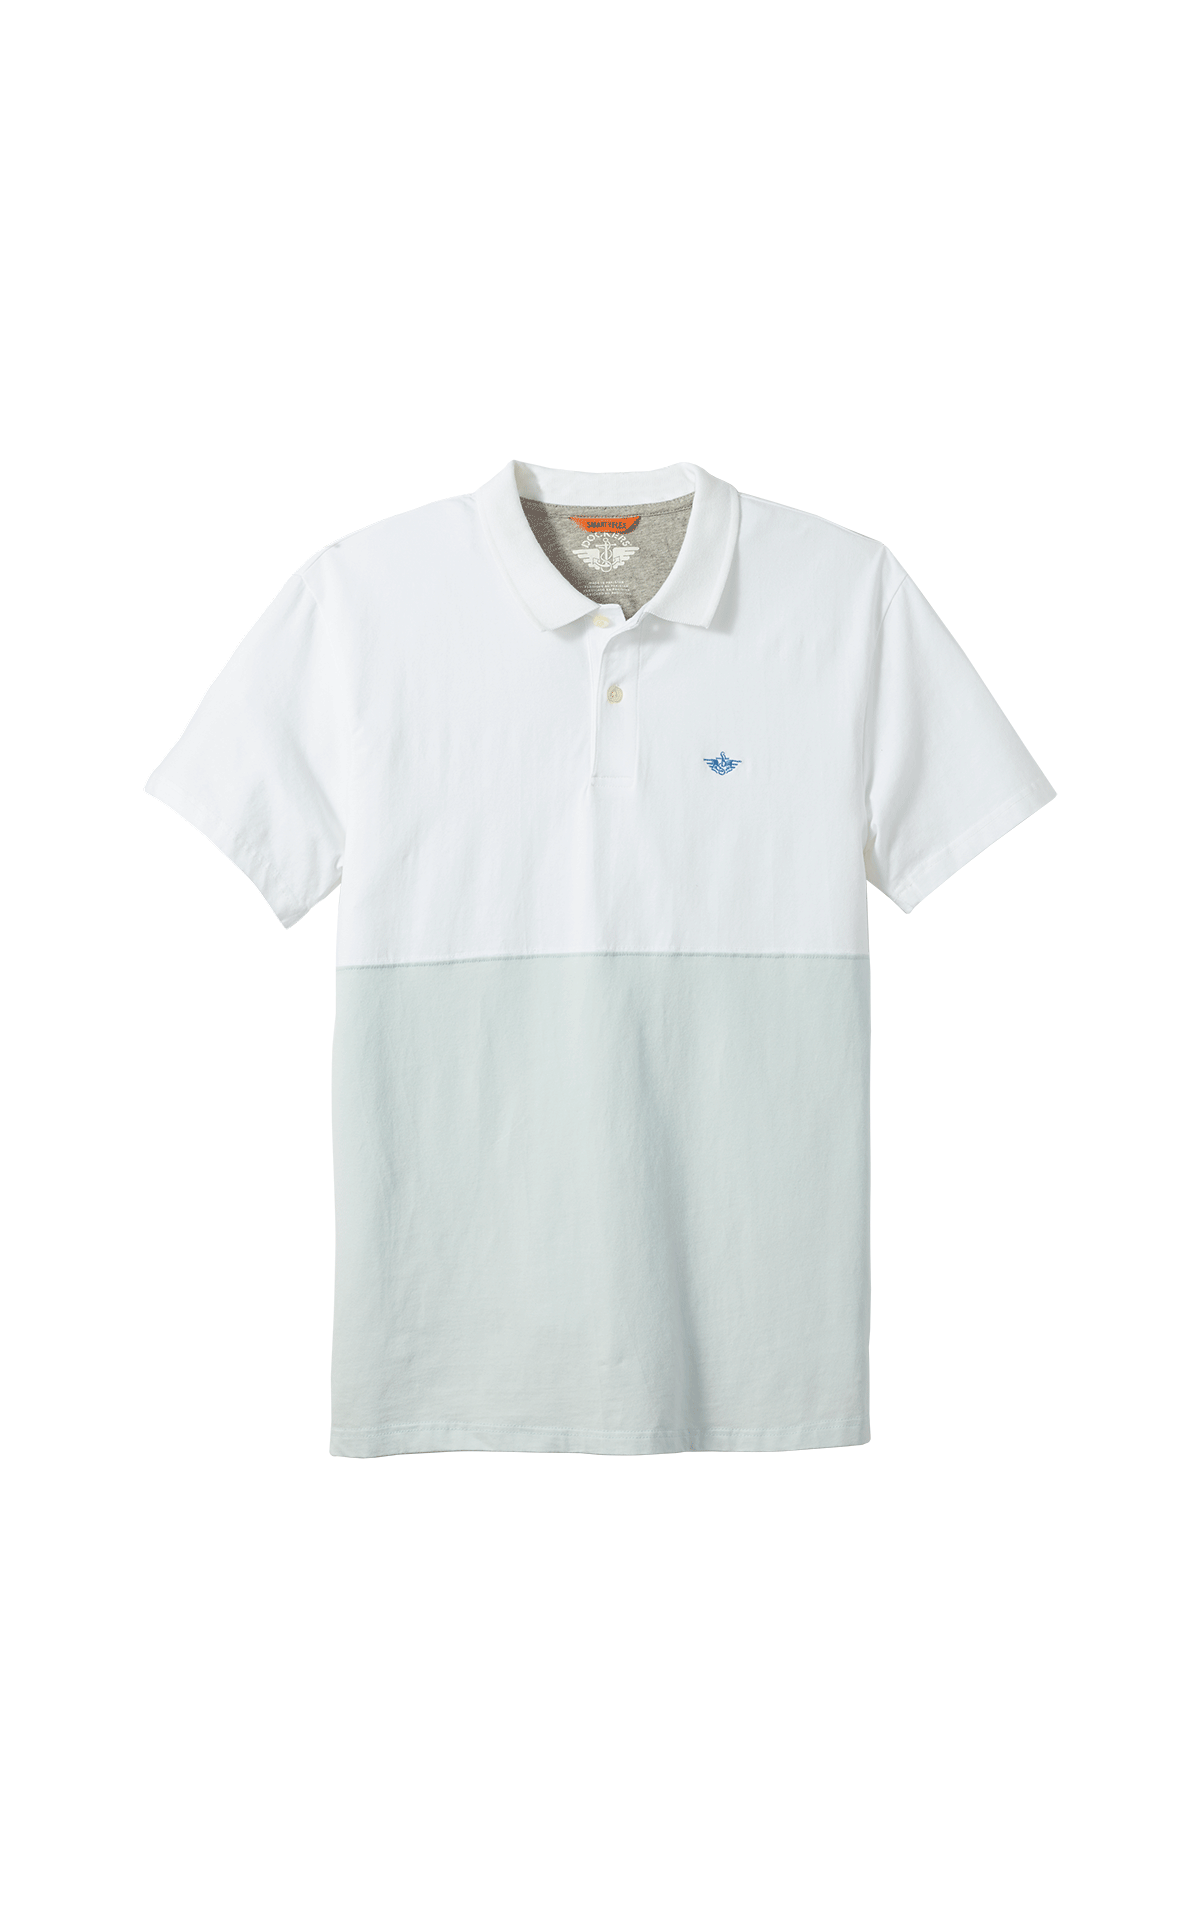 White and grey short sleeves polo shirt for man Dockers